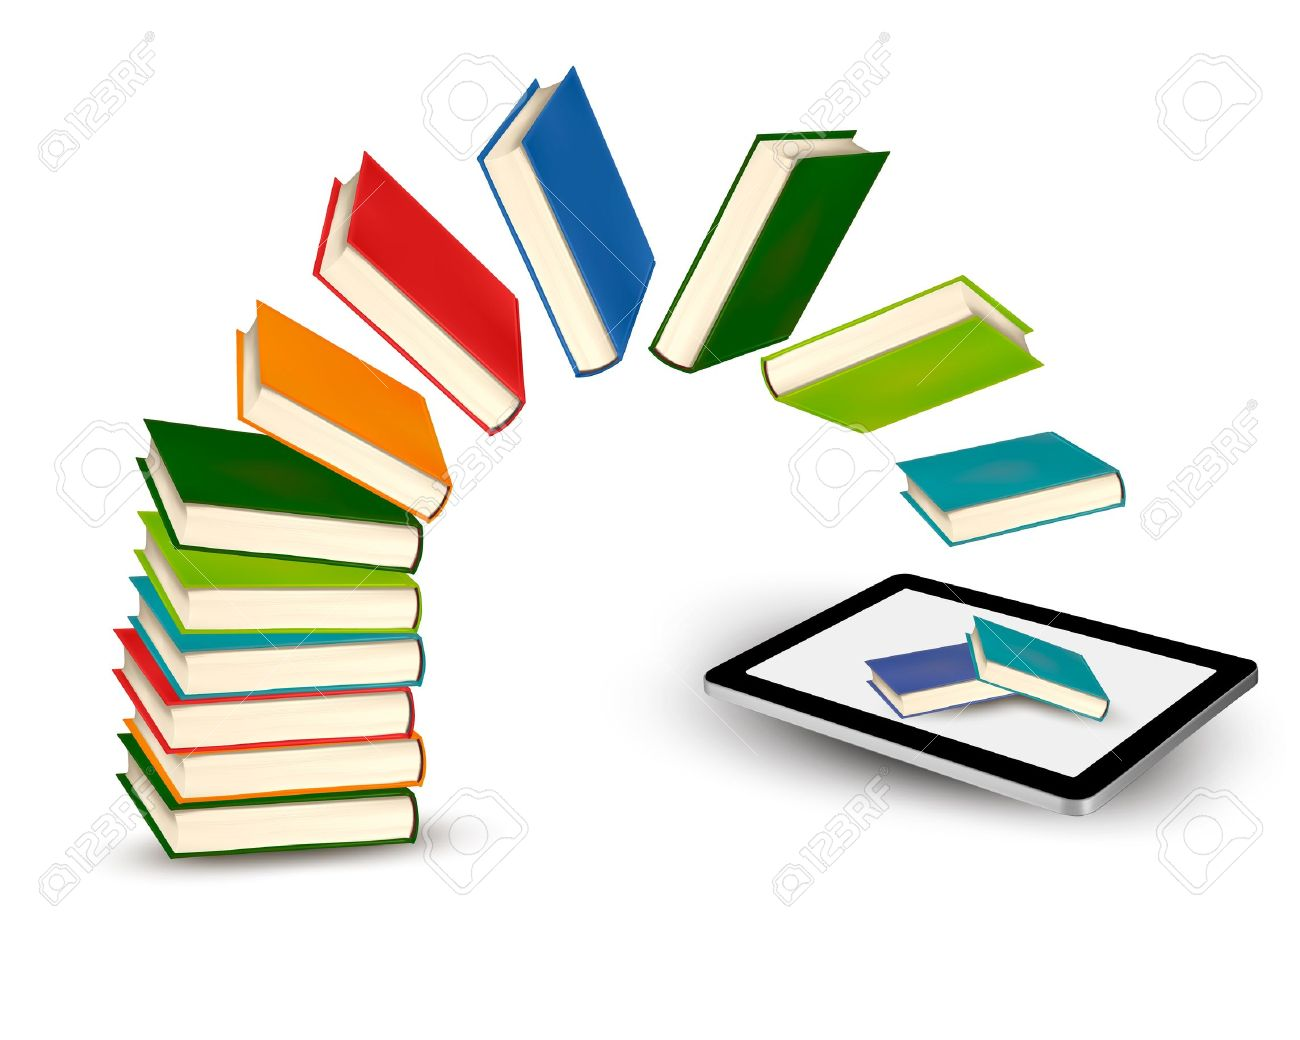 1300x1040 Books Flying In A Tablet Illustration Royalty Free Cliparts